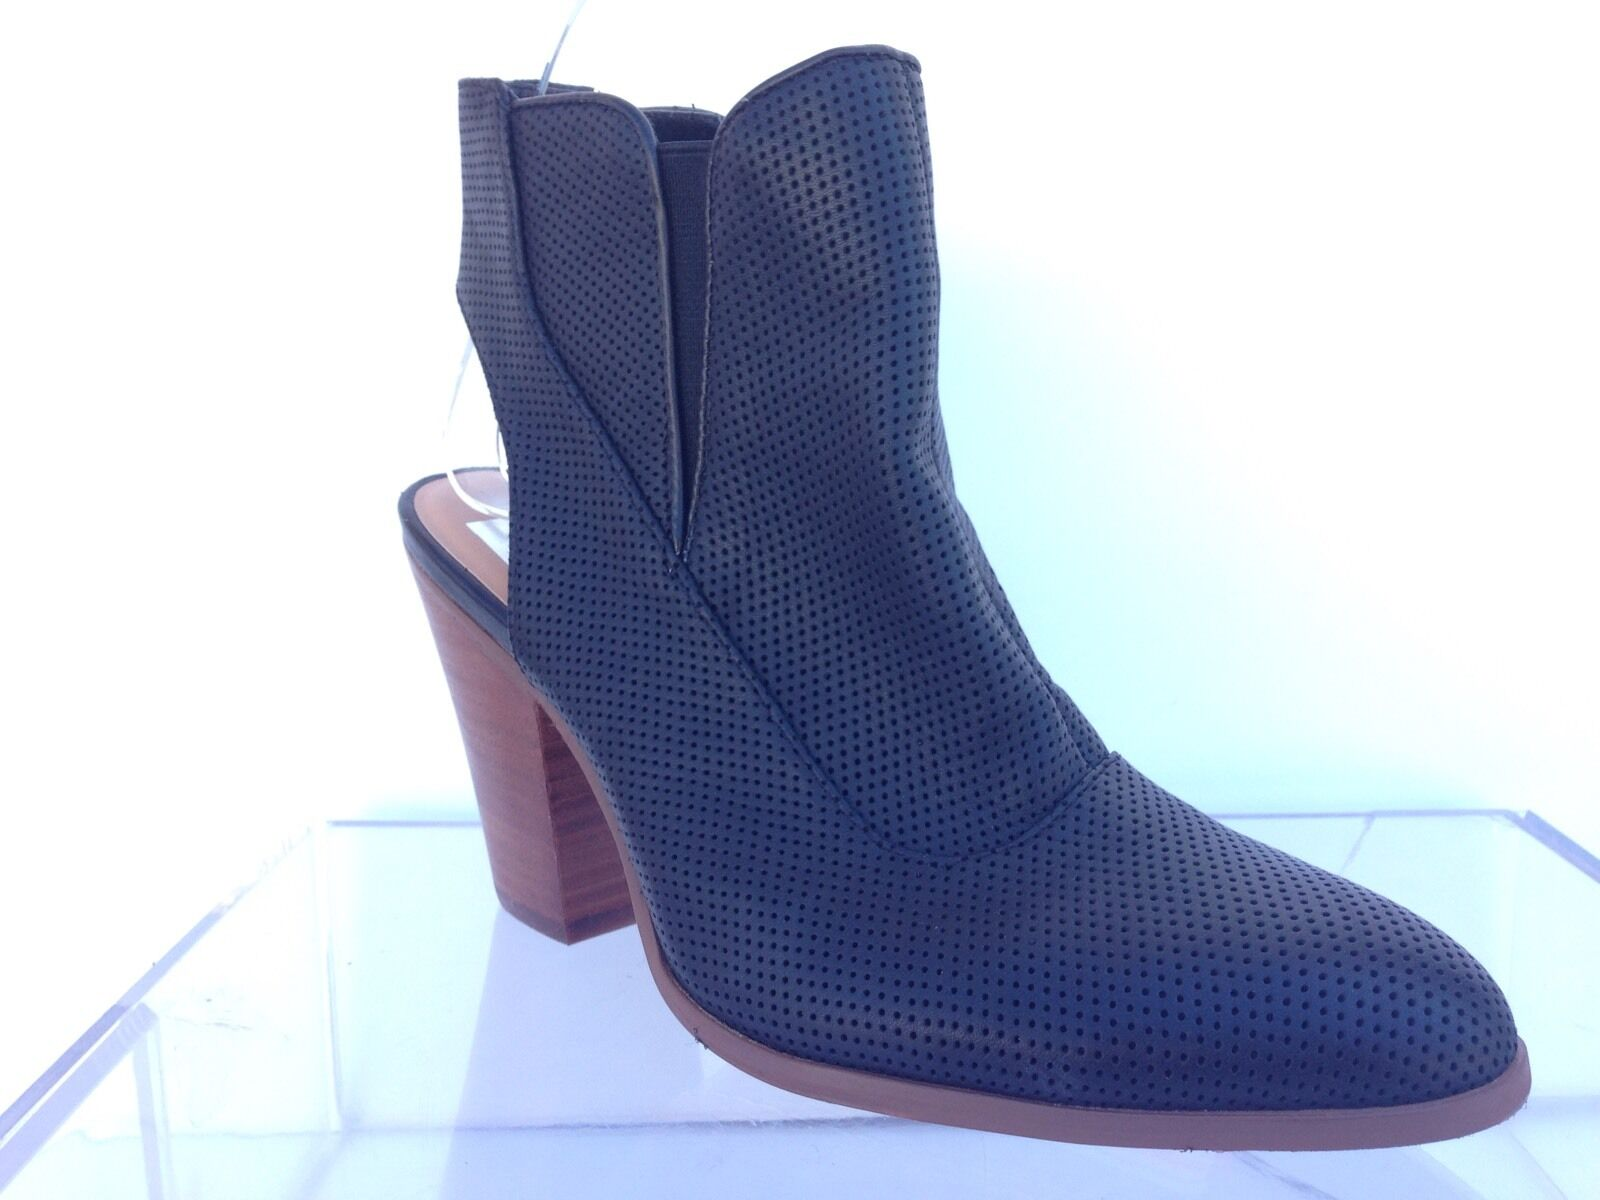 Womens Dolce Vita black/perforated leather ankle booties/ shoes sz. 7.5 M